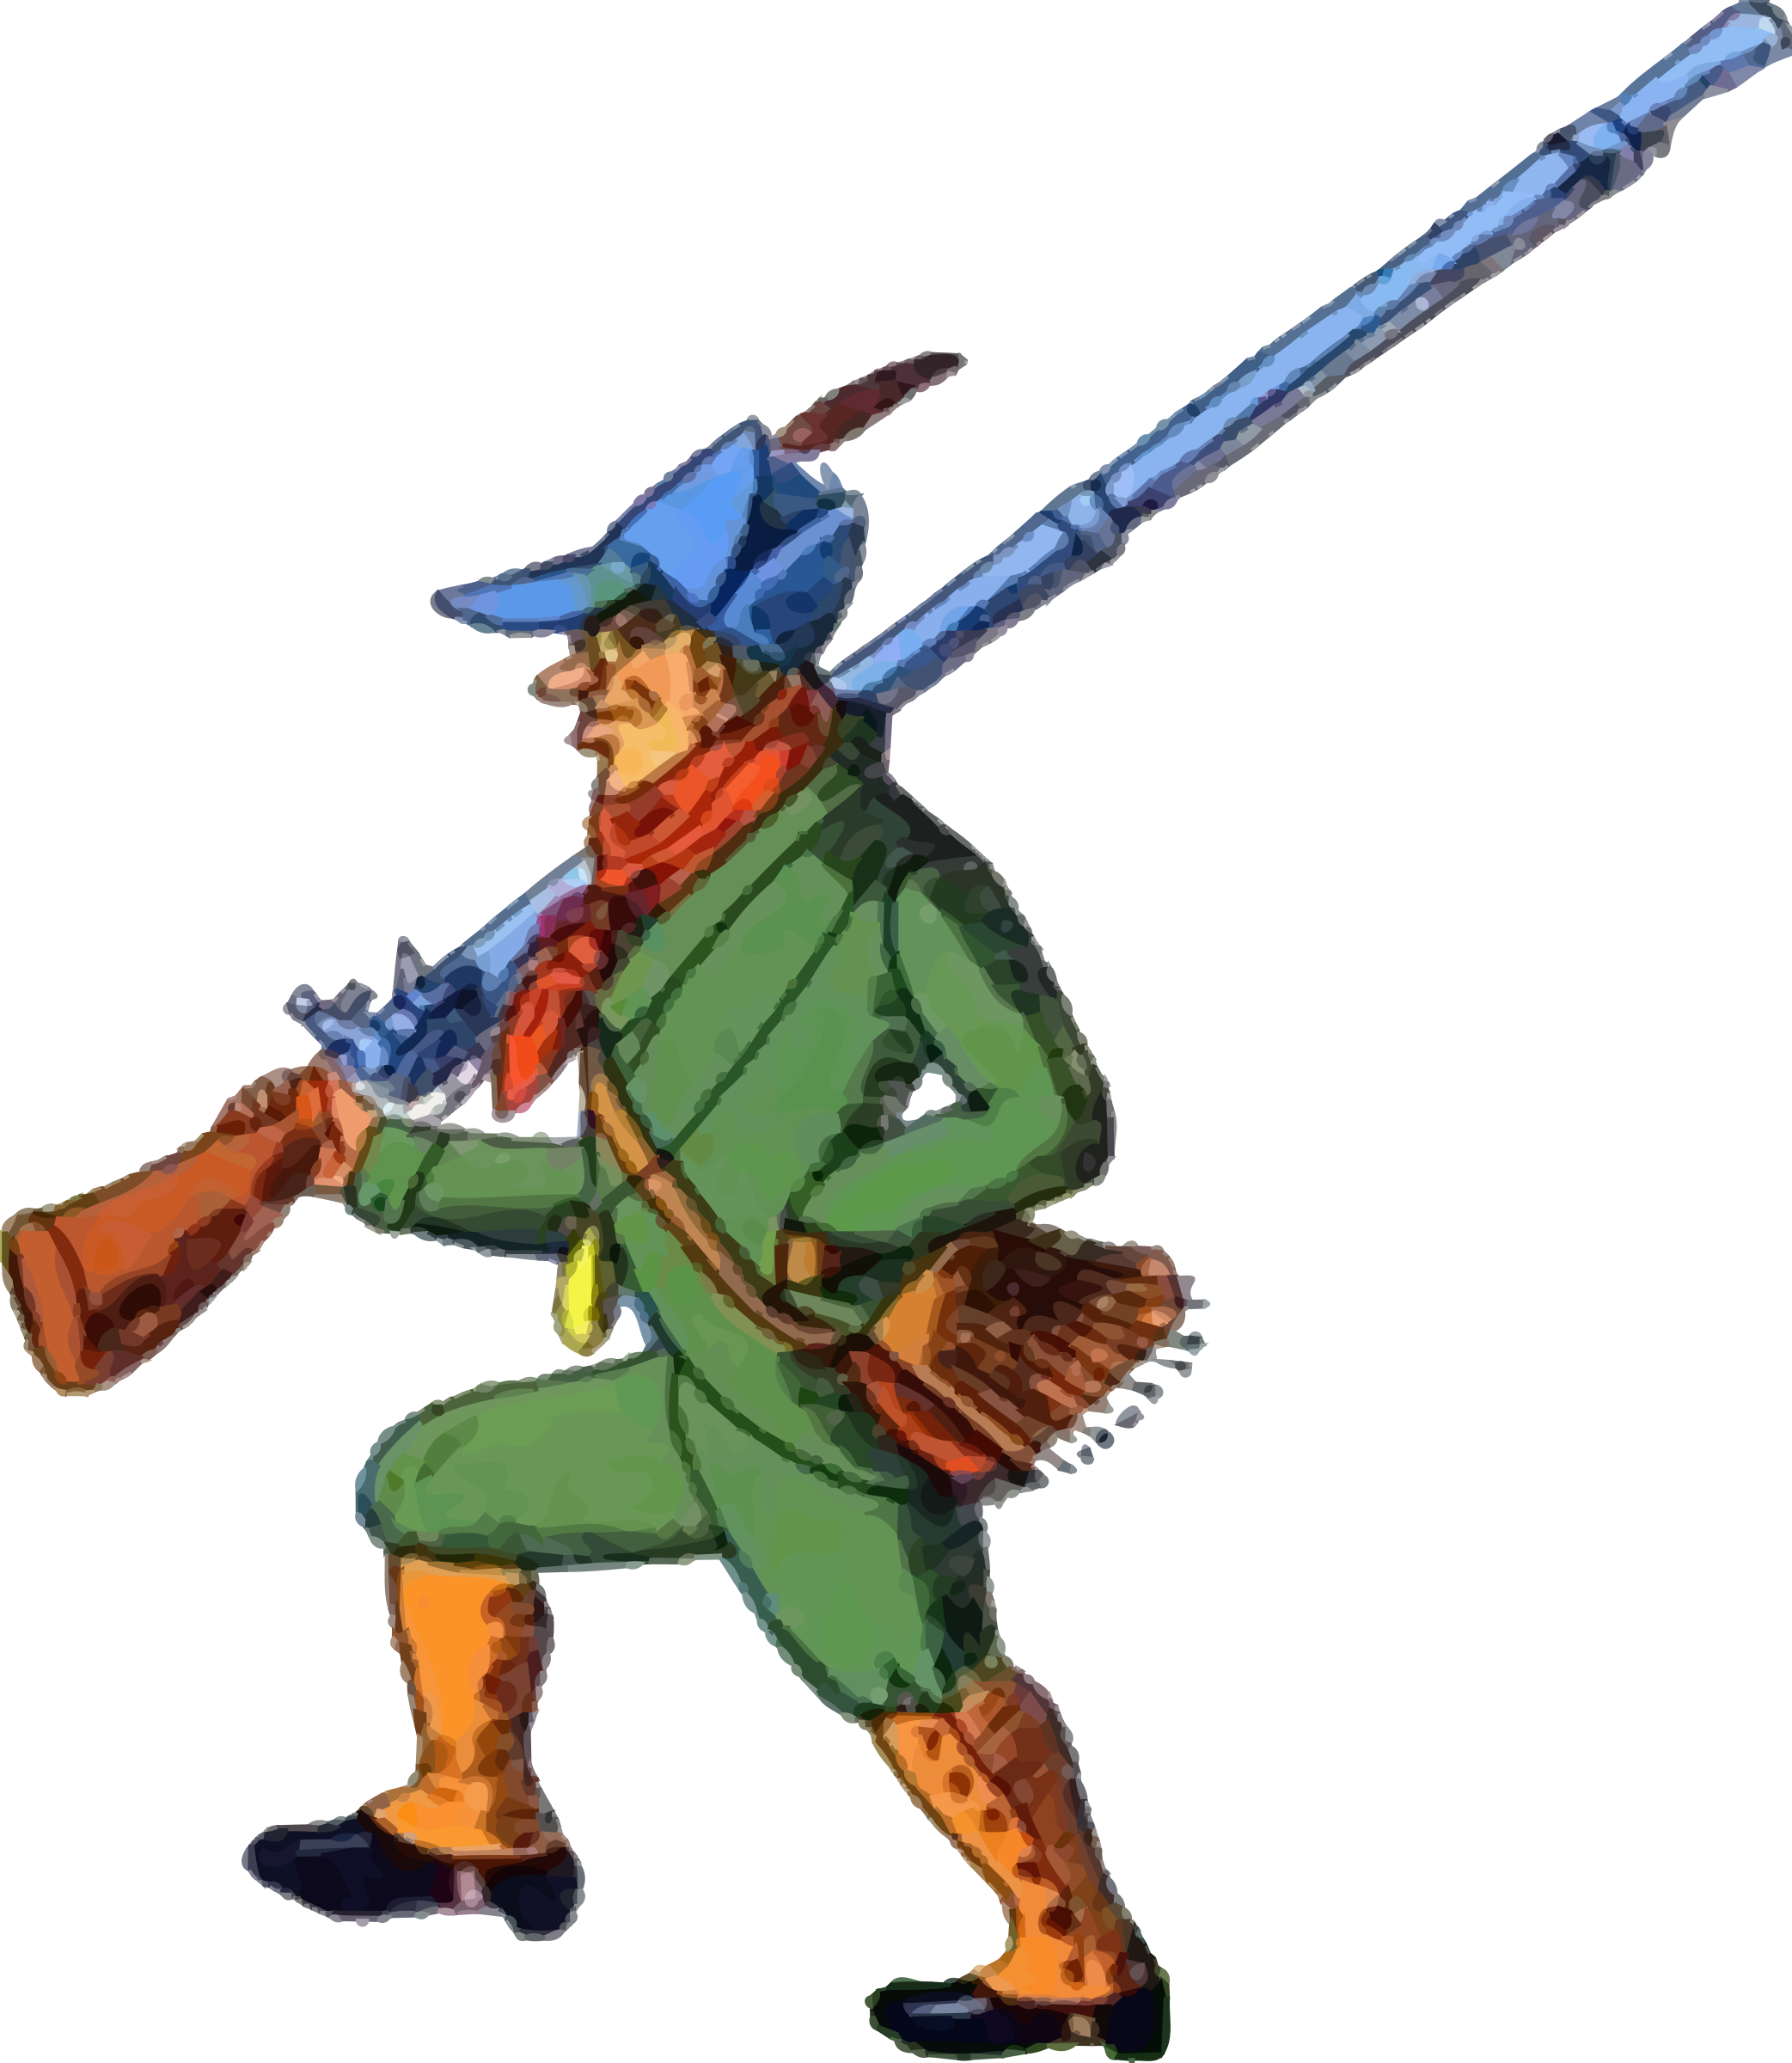 Hunter big image png. Hunting clipart man hunting